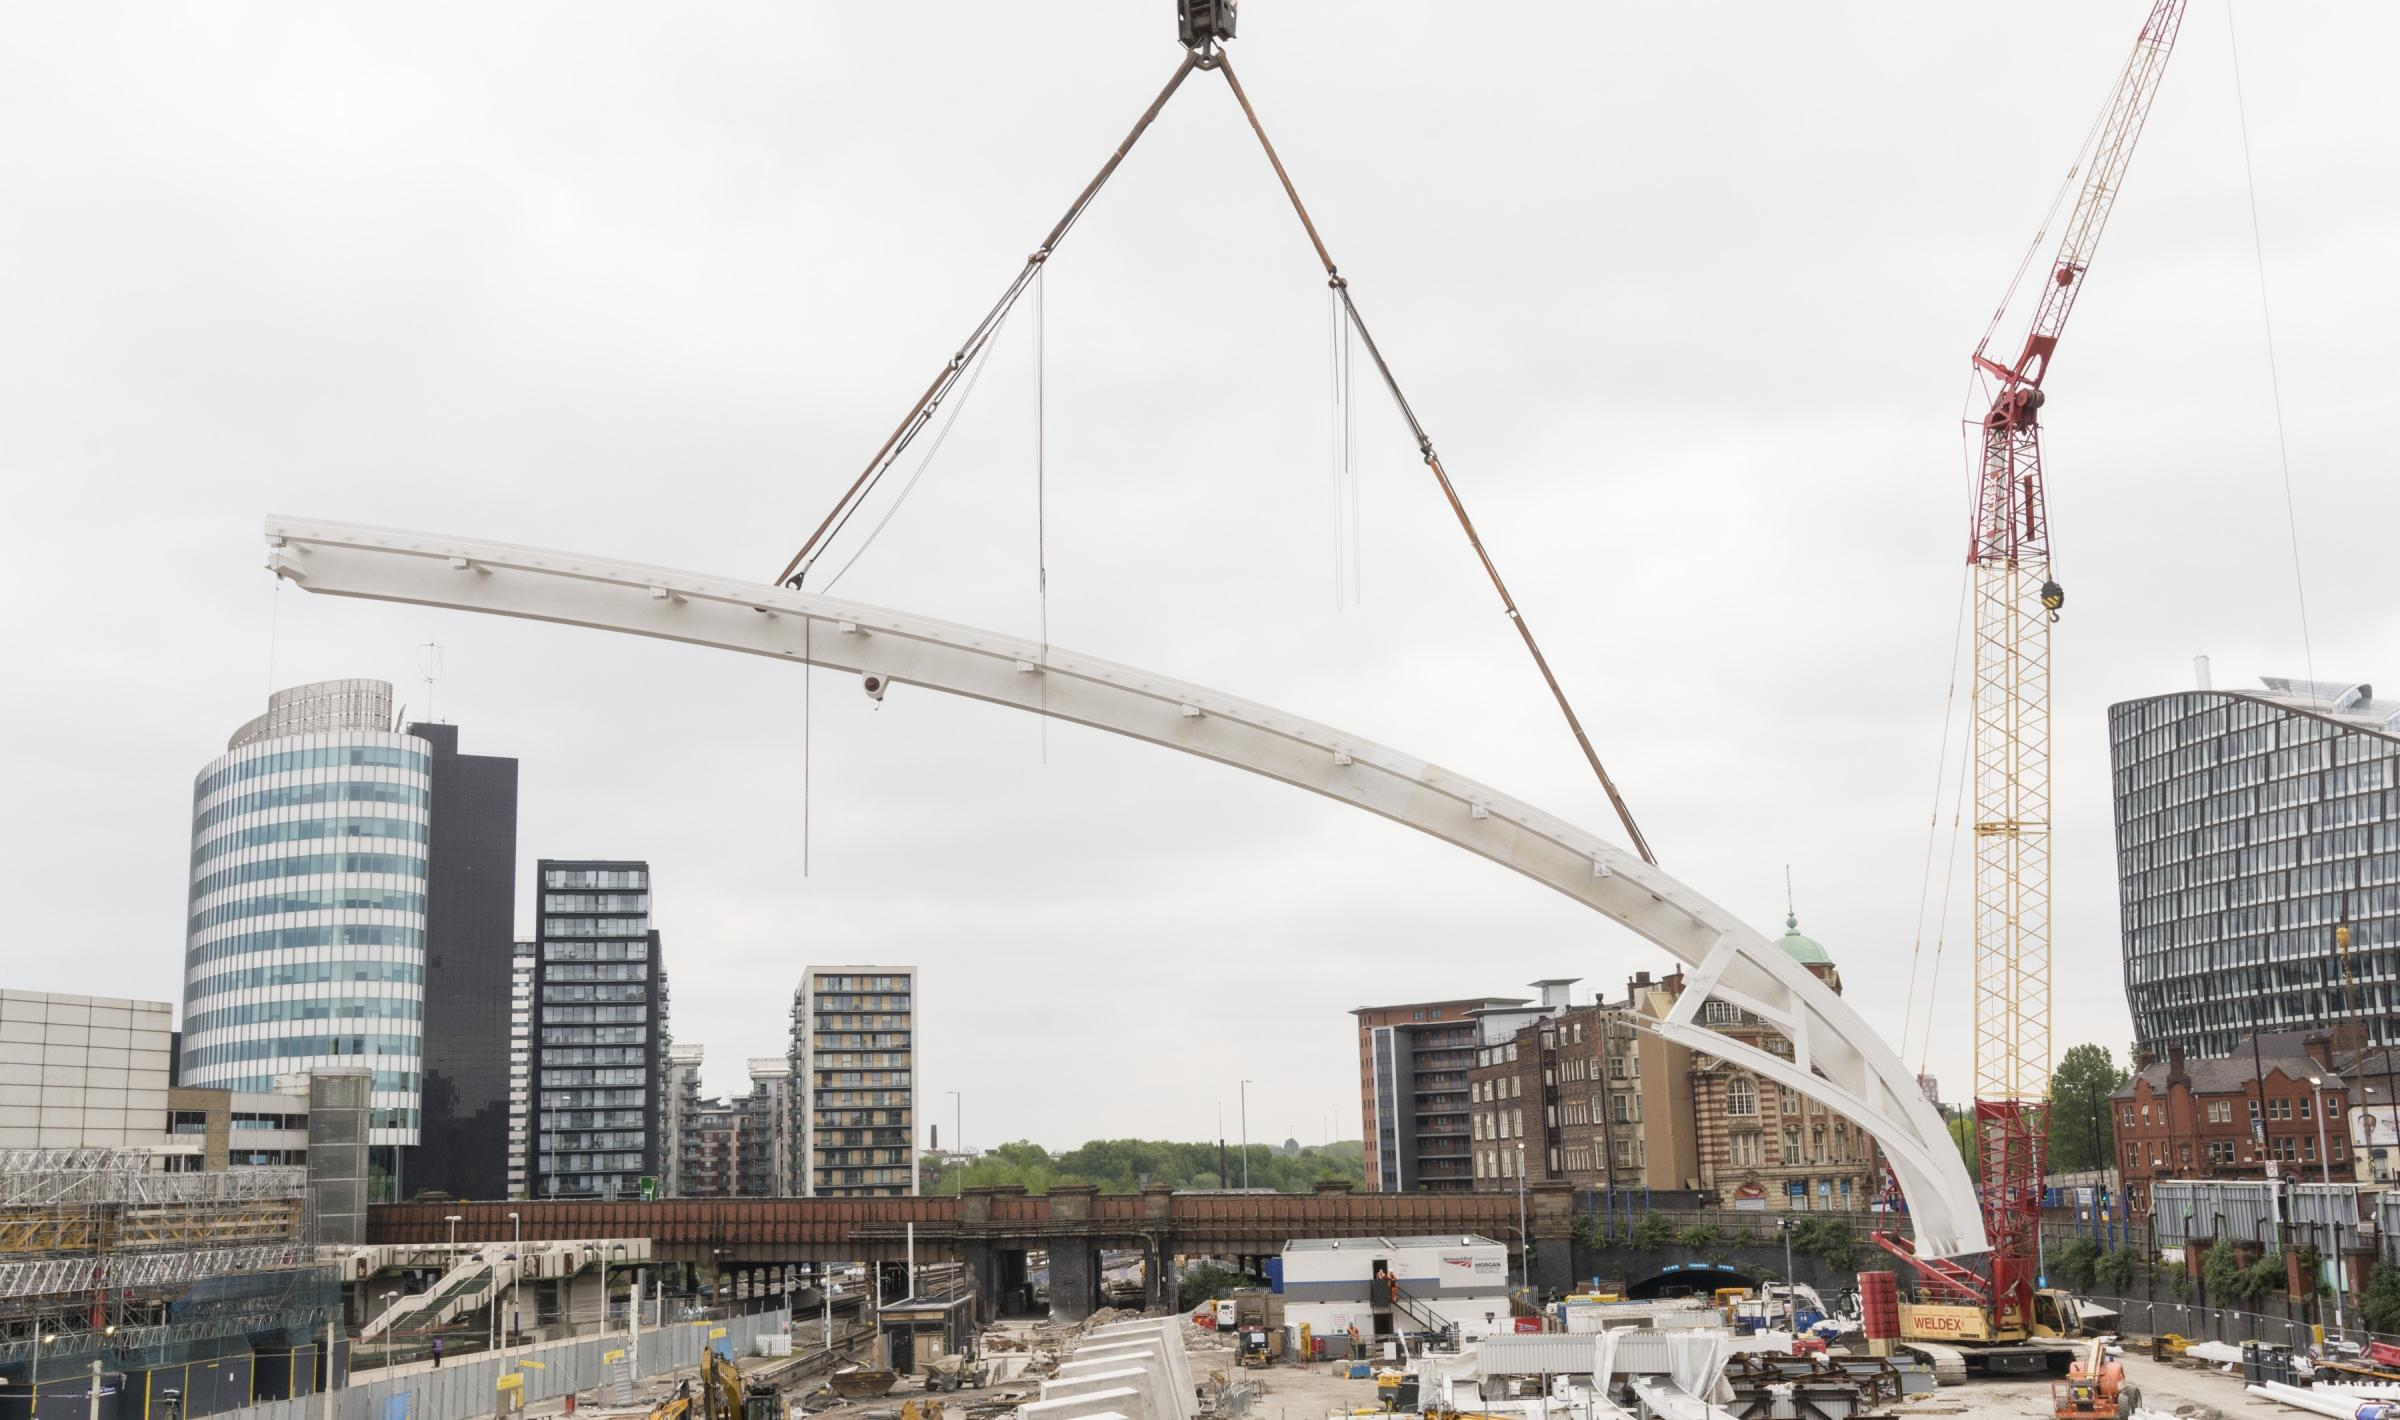 Severfield lifting into place the first of 15 giant curved ribs that will support Manchester Victoria Station's striking new glazed roof.